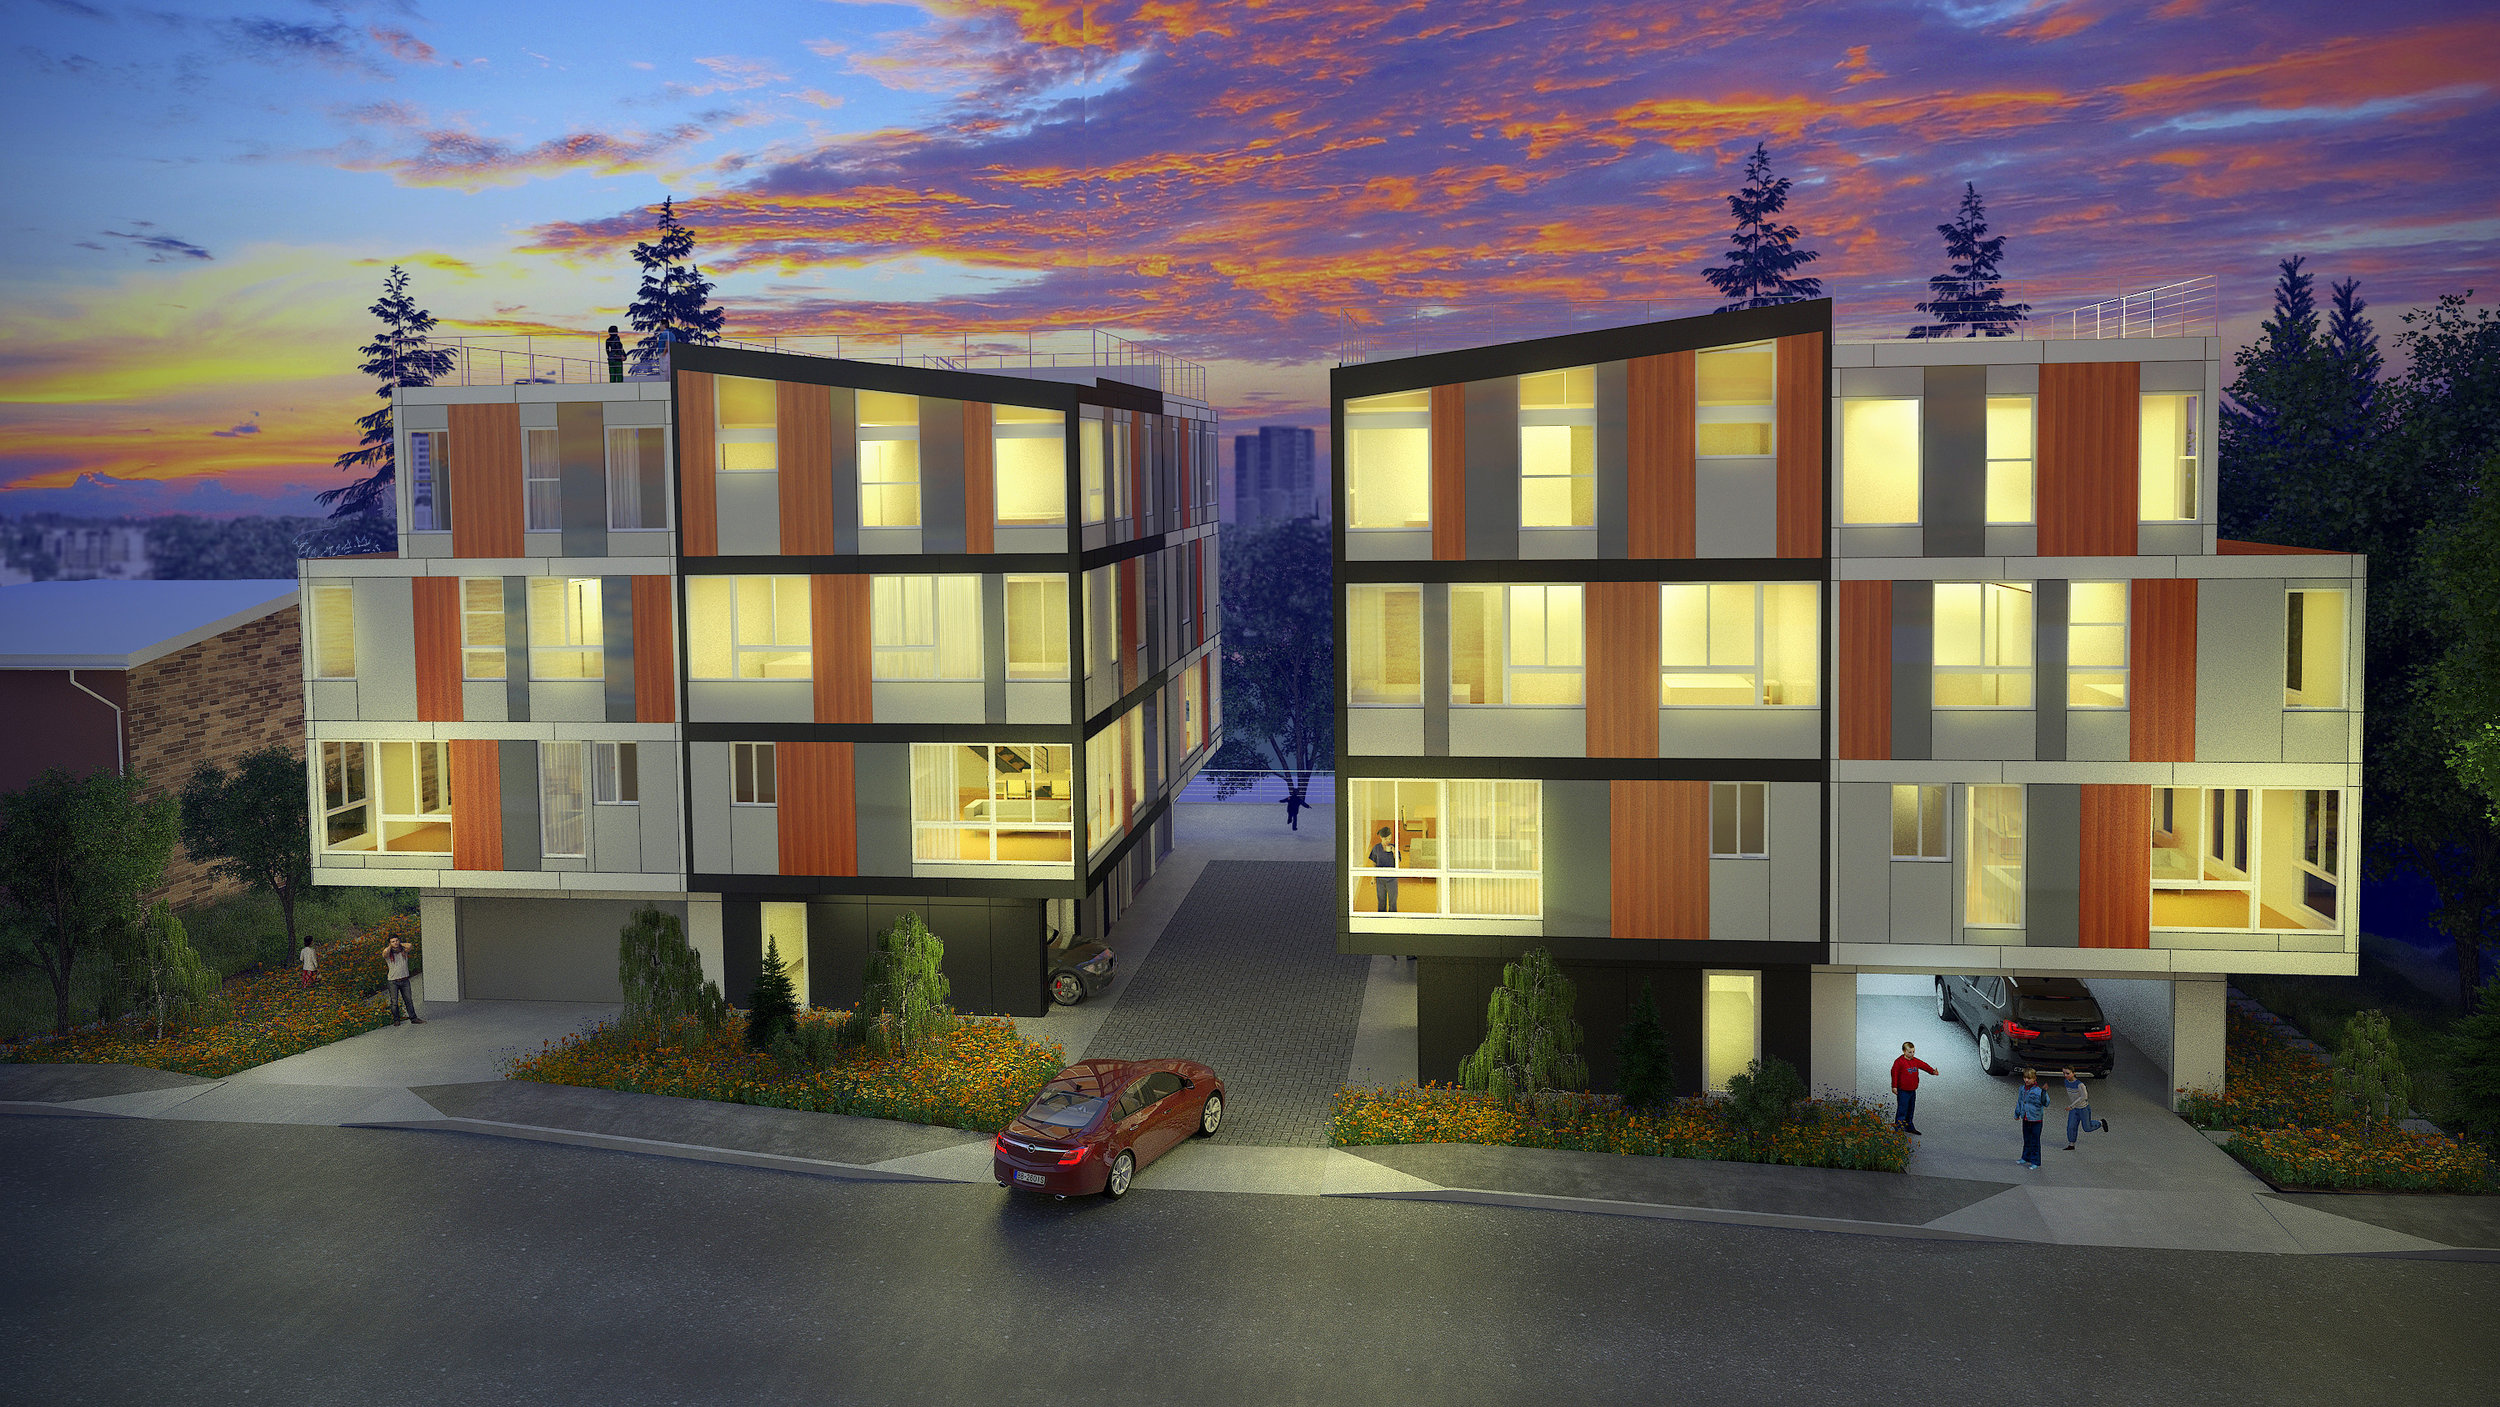 A collection of urban contemporary condos coming to West Bellevue - Fall 2019